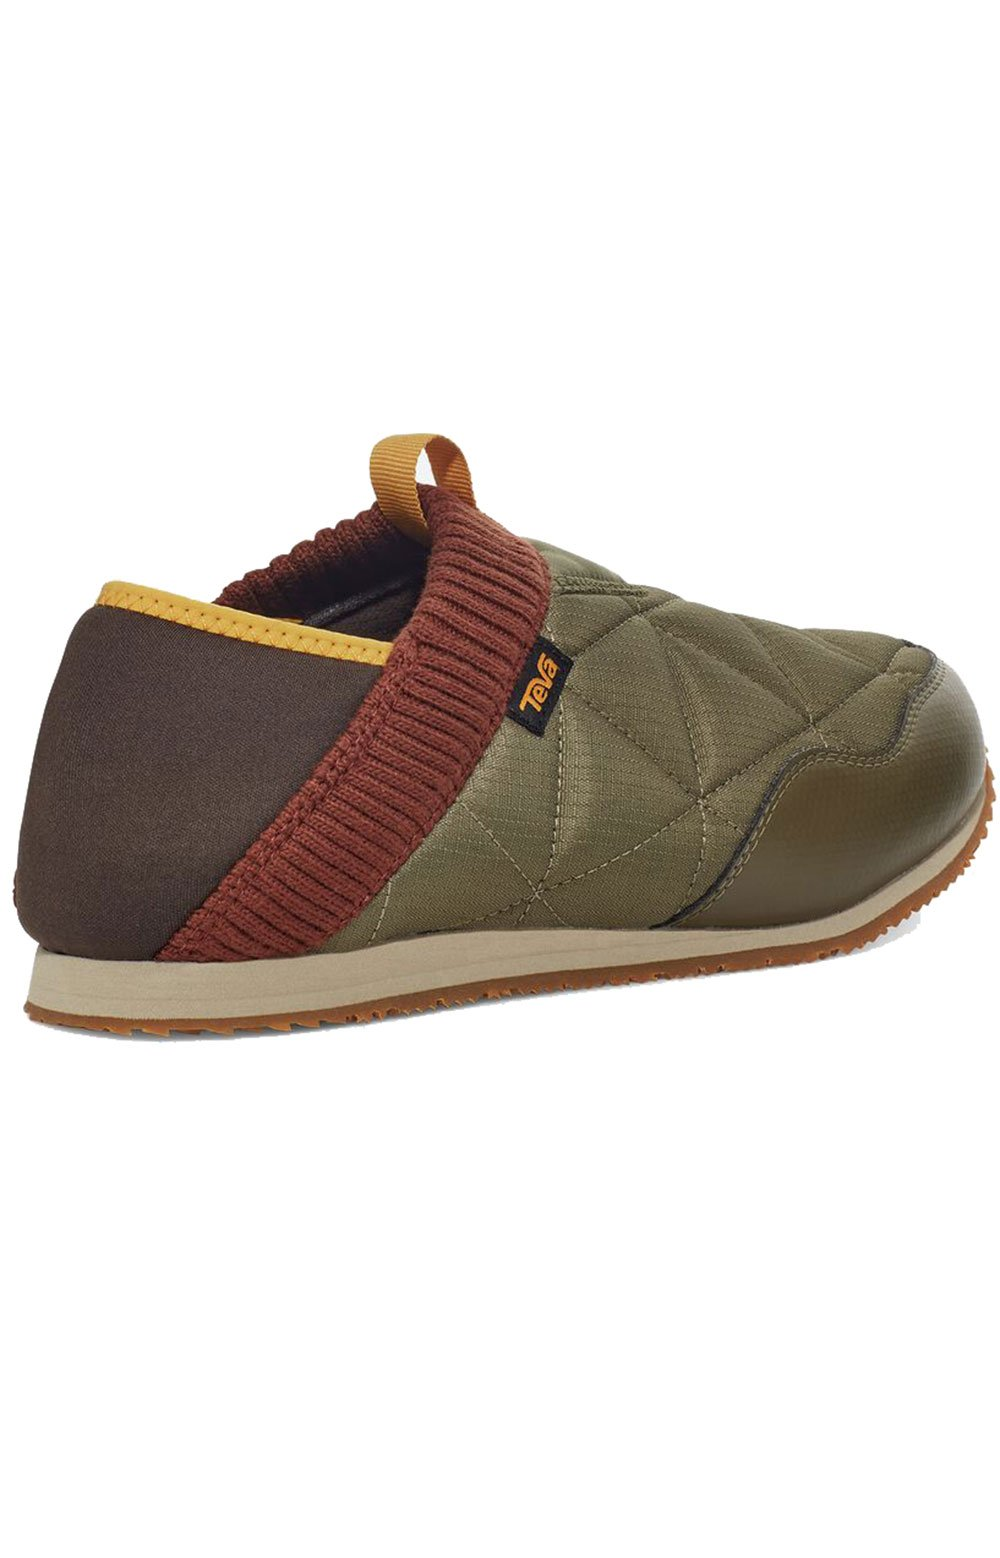 (1125472) ReEMBER Moccasins - Olive/Brown Multi  4